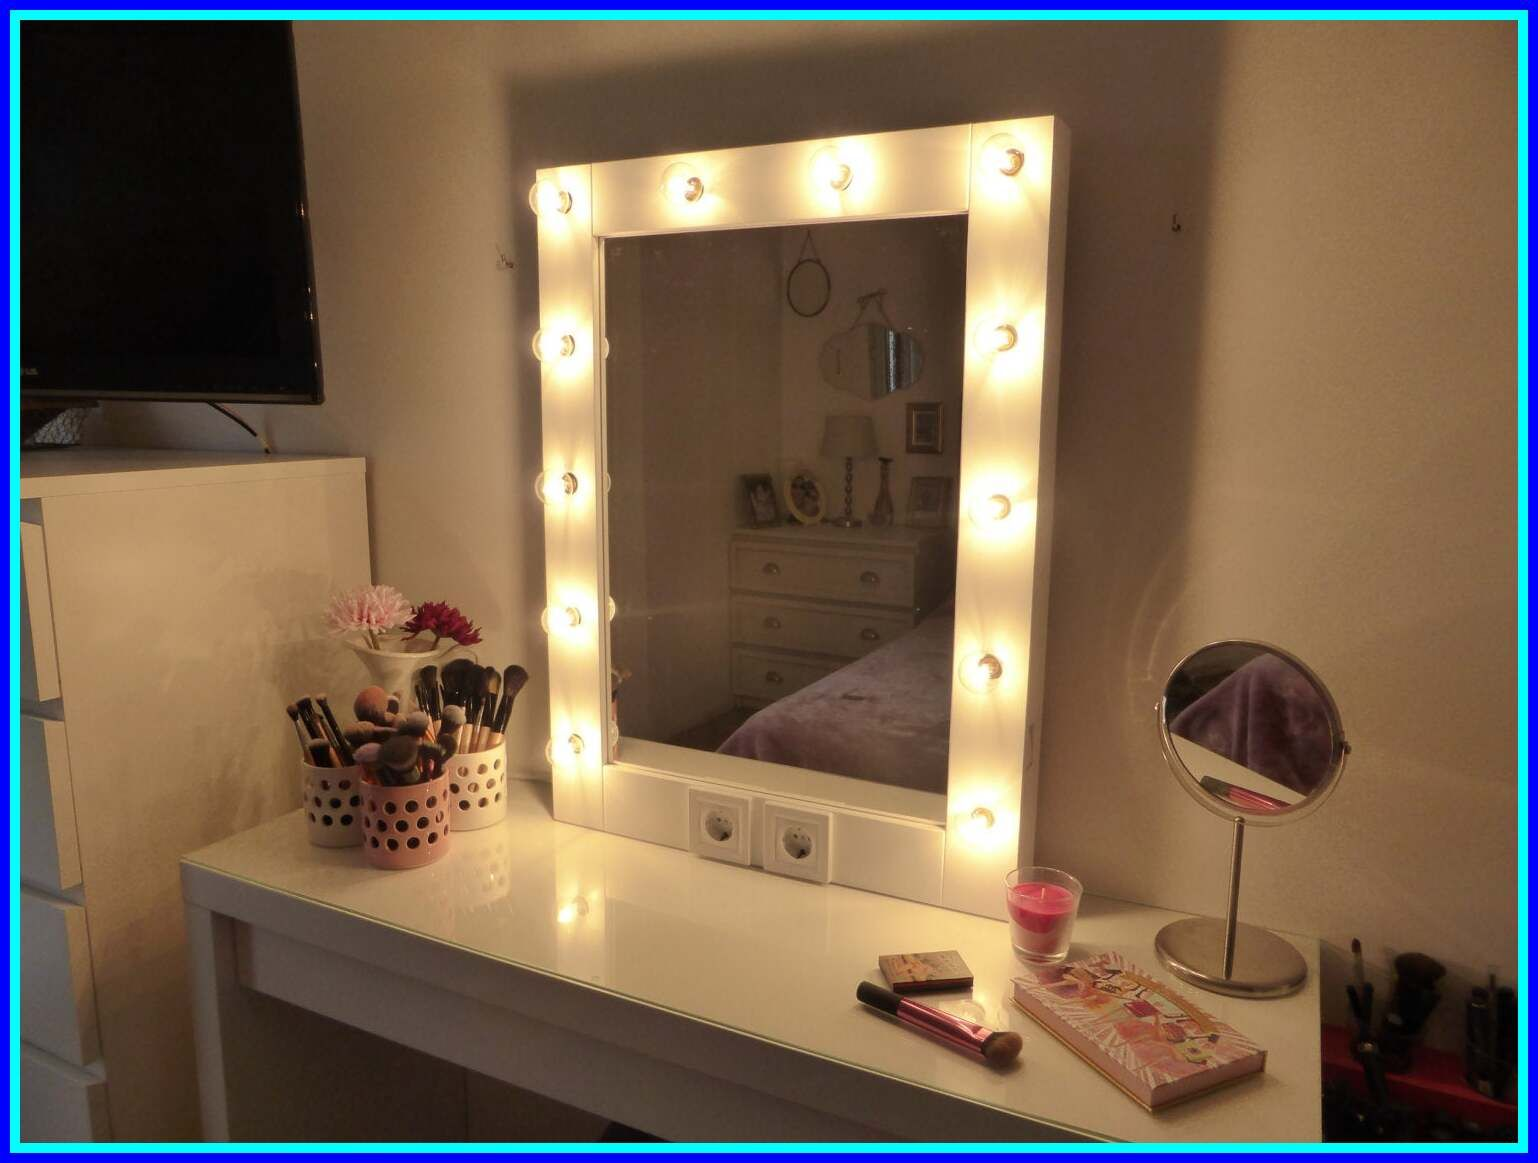 64 Reference Of Vanity Makeup Dresser With Lights In 2020 Mirror With Lights Diy Vanity Mirror Mirror With Light Bulbs